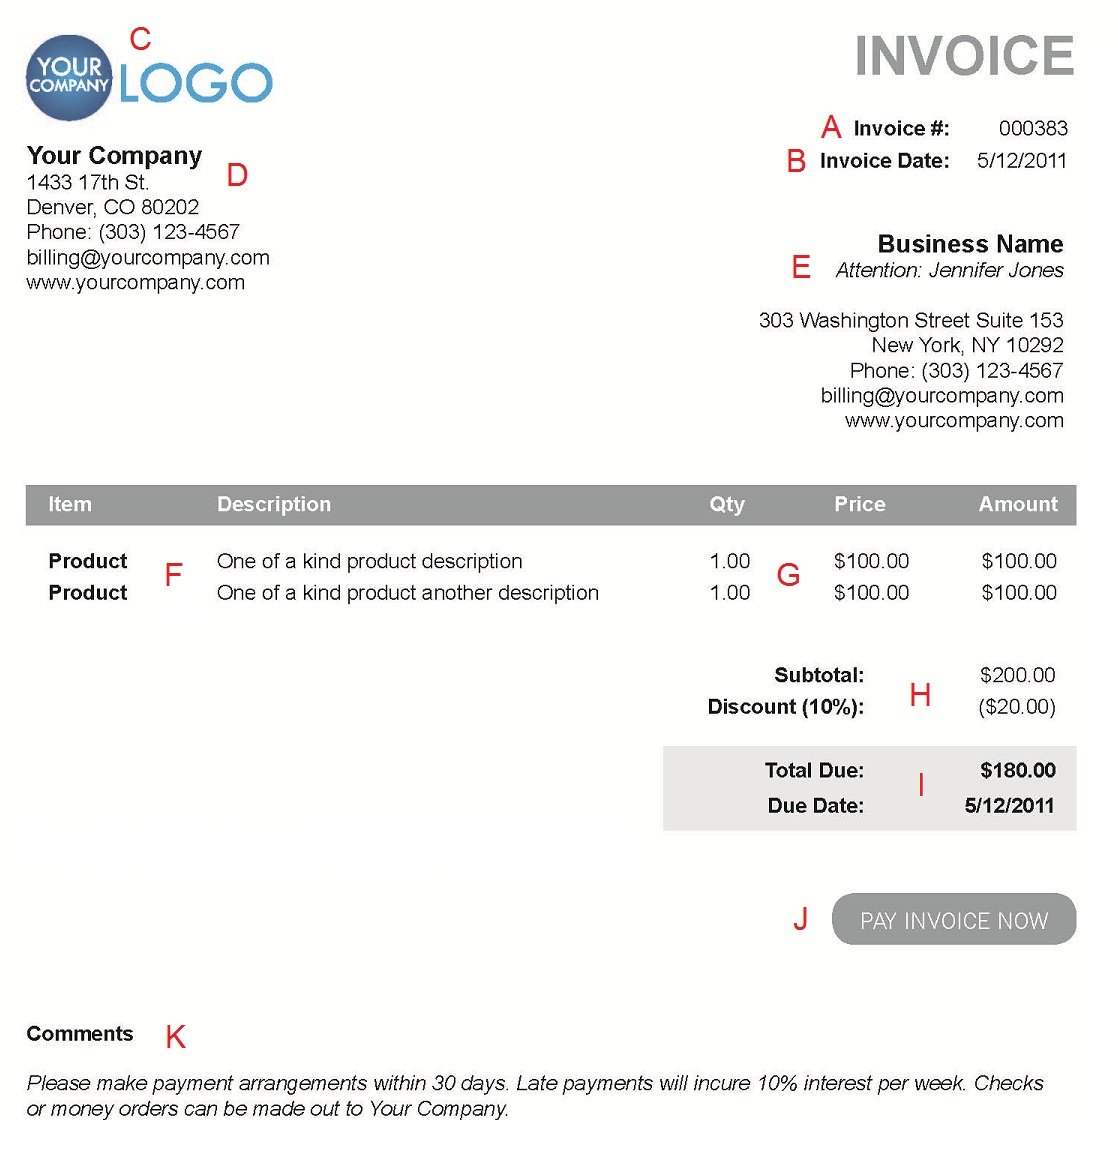 Coolmathgamesus  Inspiring The  Different Sections Of An Electronic Payment Invoice With Gorgeous A  With Cool Where Can I Find Invoice Price Of A Car Also Best Invoice Software Mac In Addition Late Invoice Letter And Cif Invoice As Well As Example Of Sales Invoice Additionally Free Printable Invoice Forms Billing From Paysimplecom With Coolmathgamesus  Gorgeous The  Different Sections Of An Electronic Payment Invoice With Cool A  And Inspiring Where Can I Find Invoice Price Of A Car Also Best Invoice Software Mac In Addition Late Invoice Letter From Paysimplecom